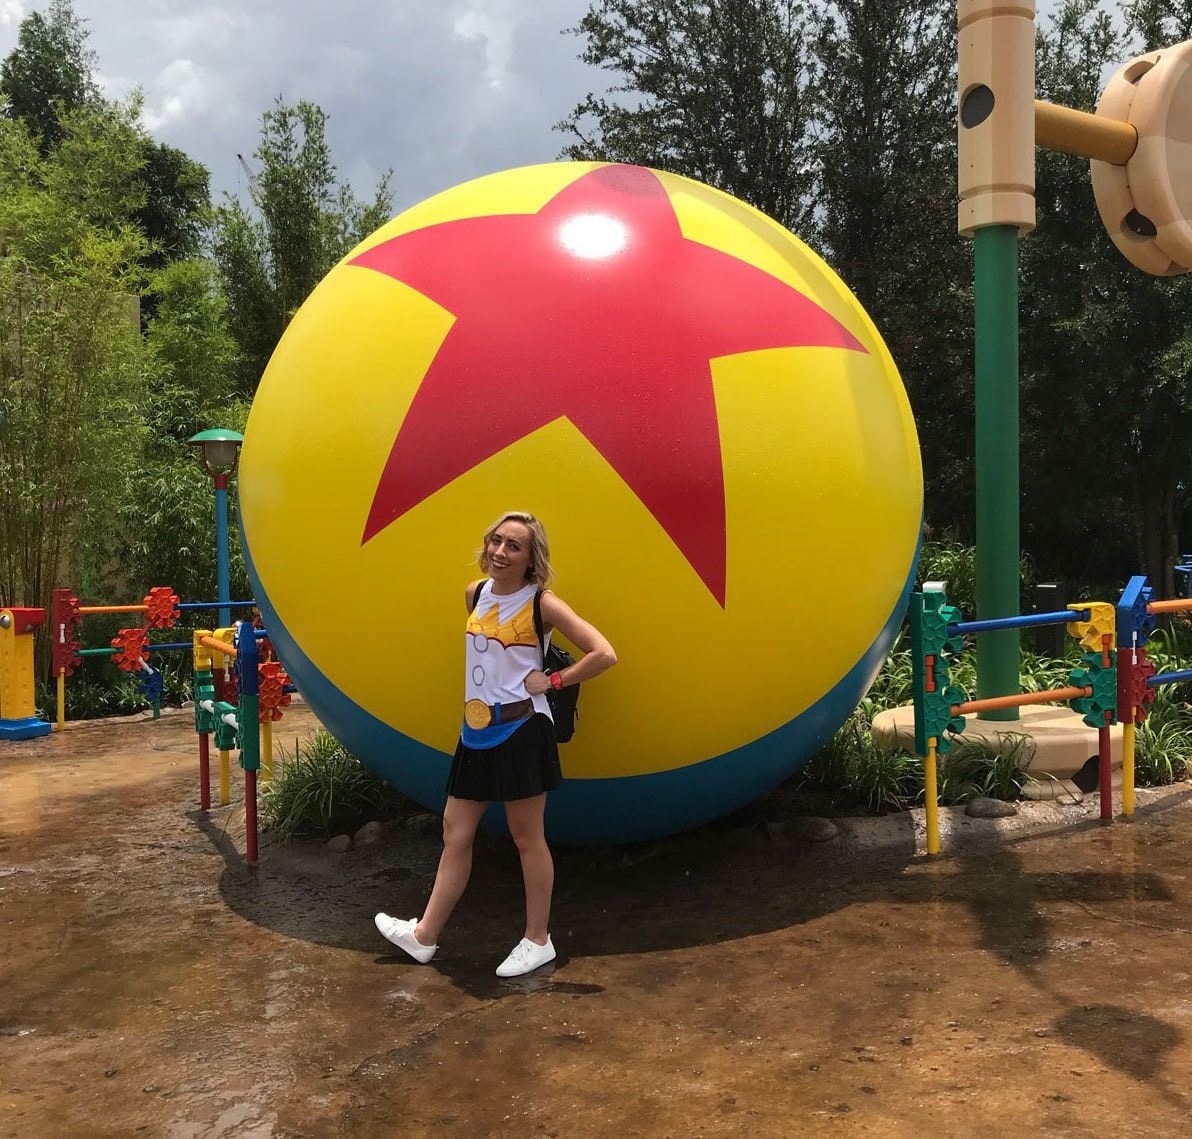 Pixar Ball in Toy Story Land in Walt Disney World and Oh My Disney Host Michelle Lema